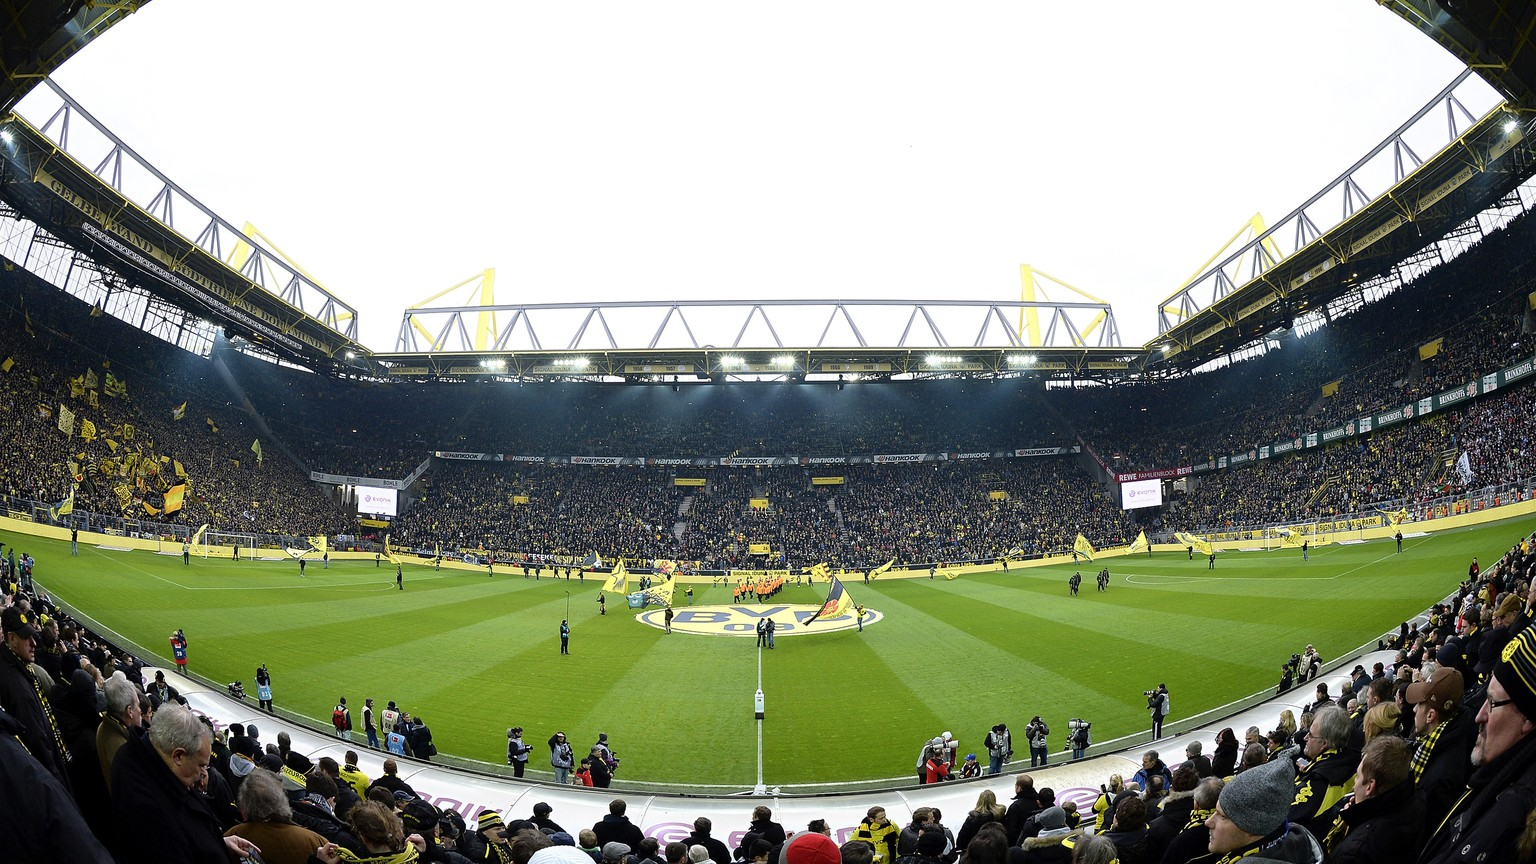 DORTMUND, GERMANY - JANUARY 25:  A general view of Signal Iduna Park prior to the Bundesliga match between Borussia Dortmund and FC Augsburg at Signal Iduna Park on January 25, 2014 in Dortmund, Germany.  (Photo by Sascha Steinbach/Bongarts/Getty Images)